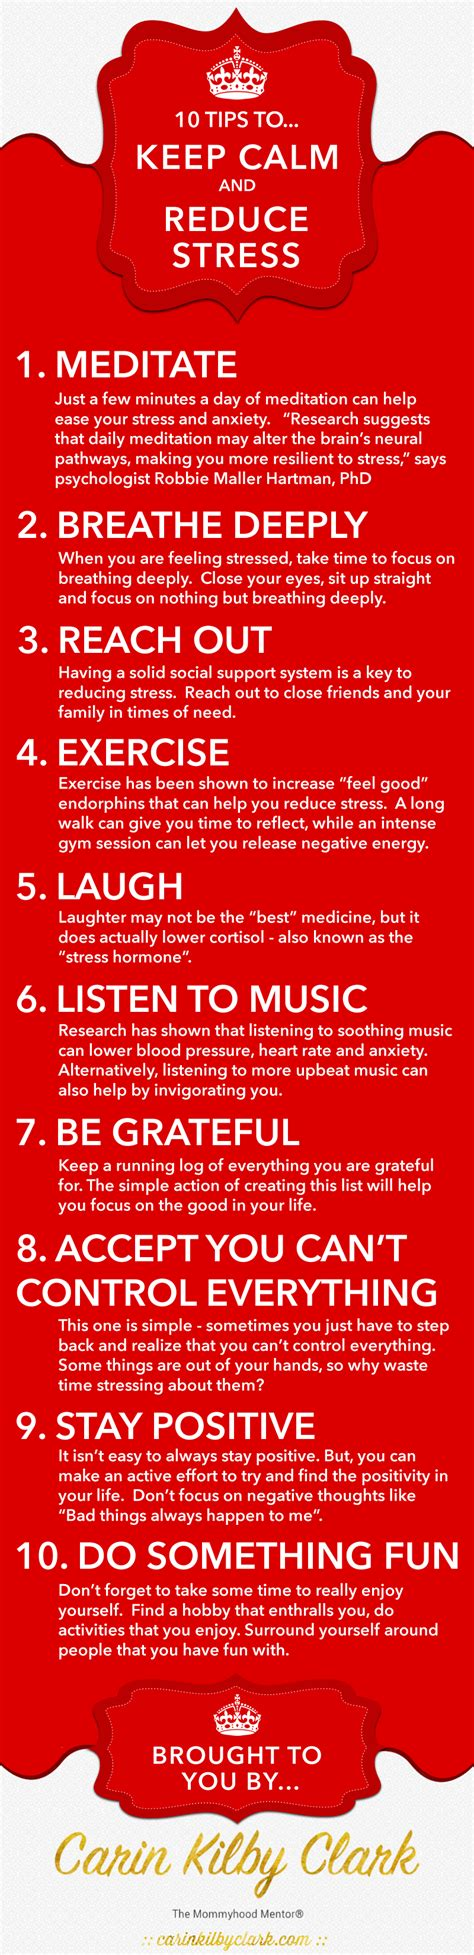 stress ultimate stress management guide to reduce remove stress anxiety depression permanently 10 effective tips to stop stress today books 10 tips to keep calm reduce stress infographic